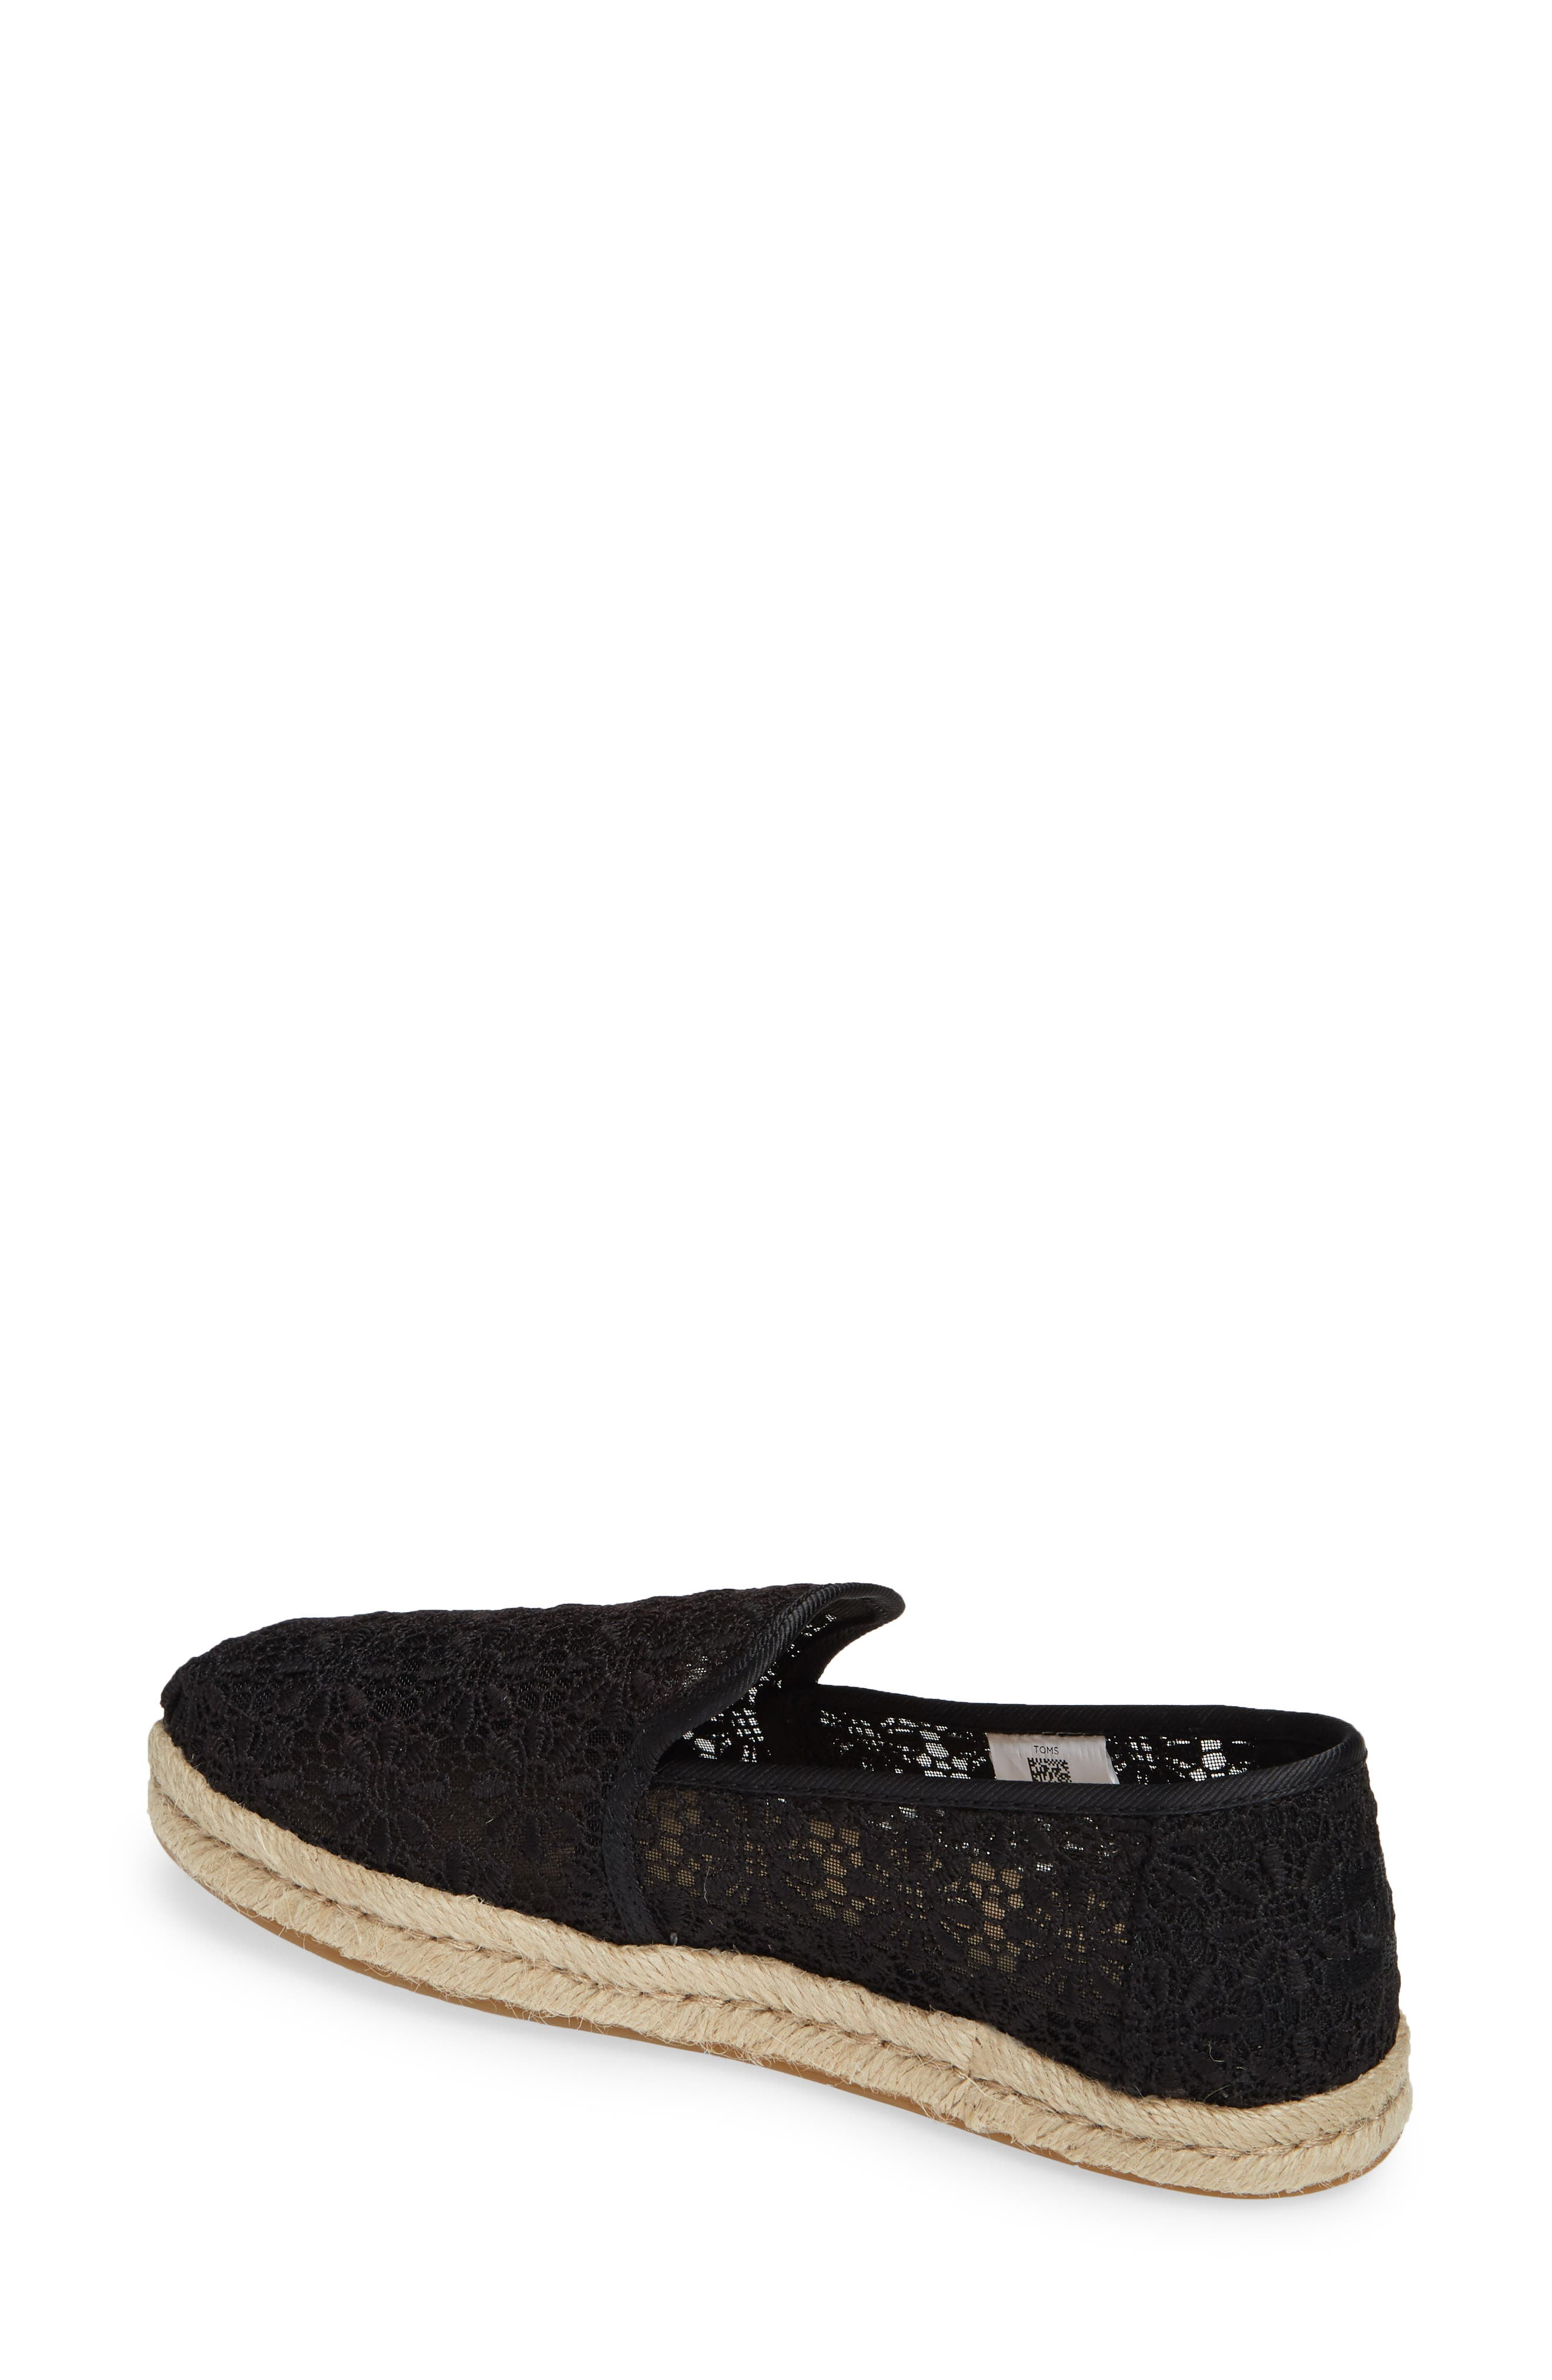 3d117a0a8 Women's TOMS Shoes | Nordstrom